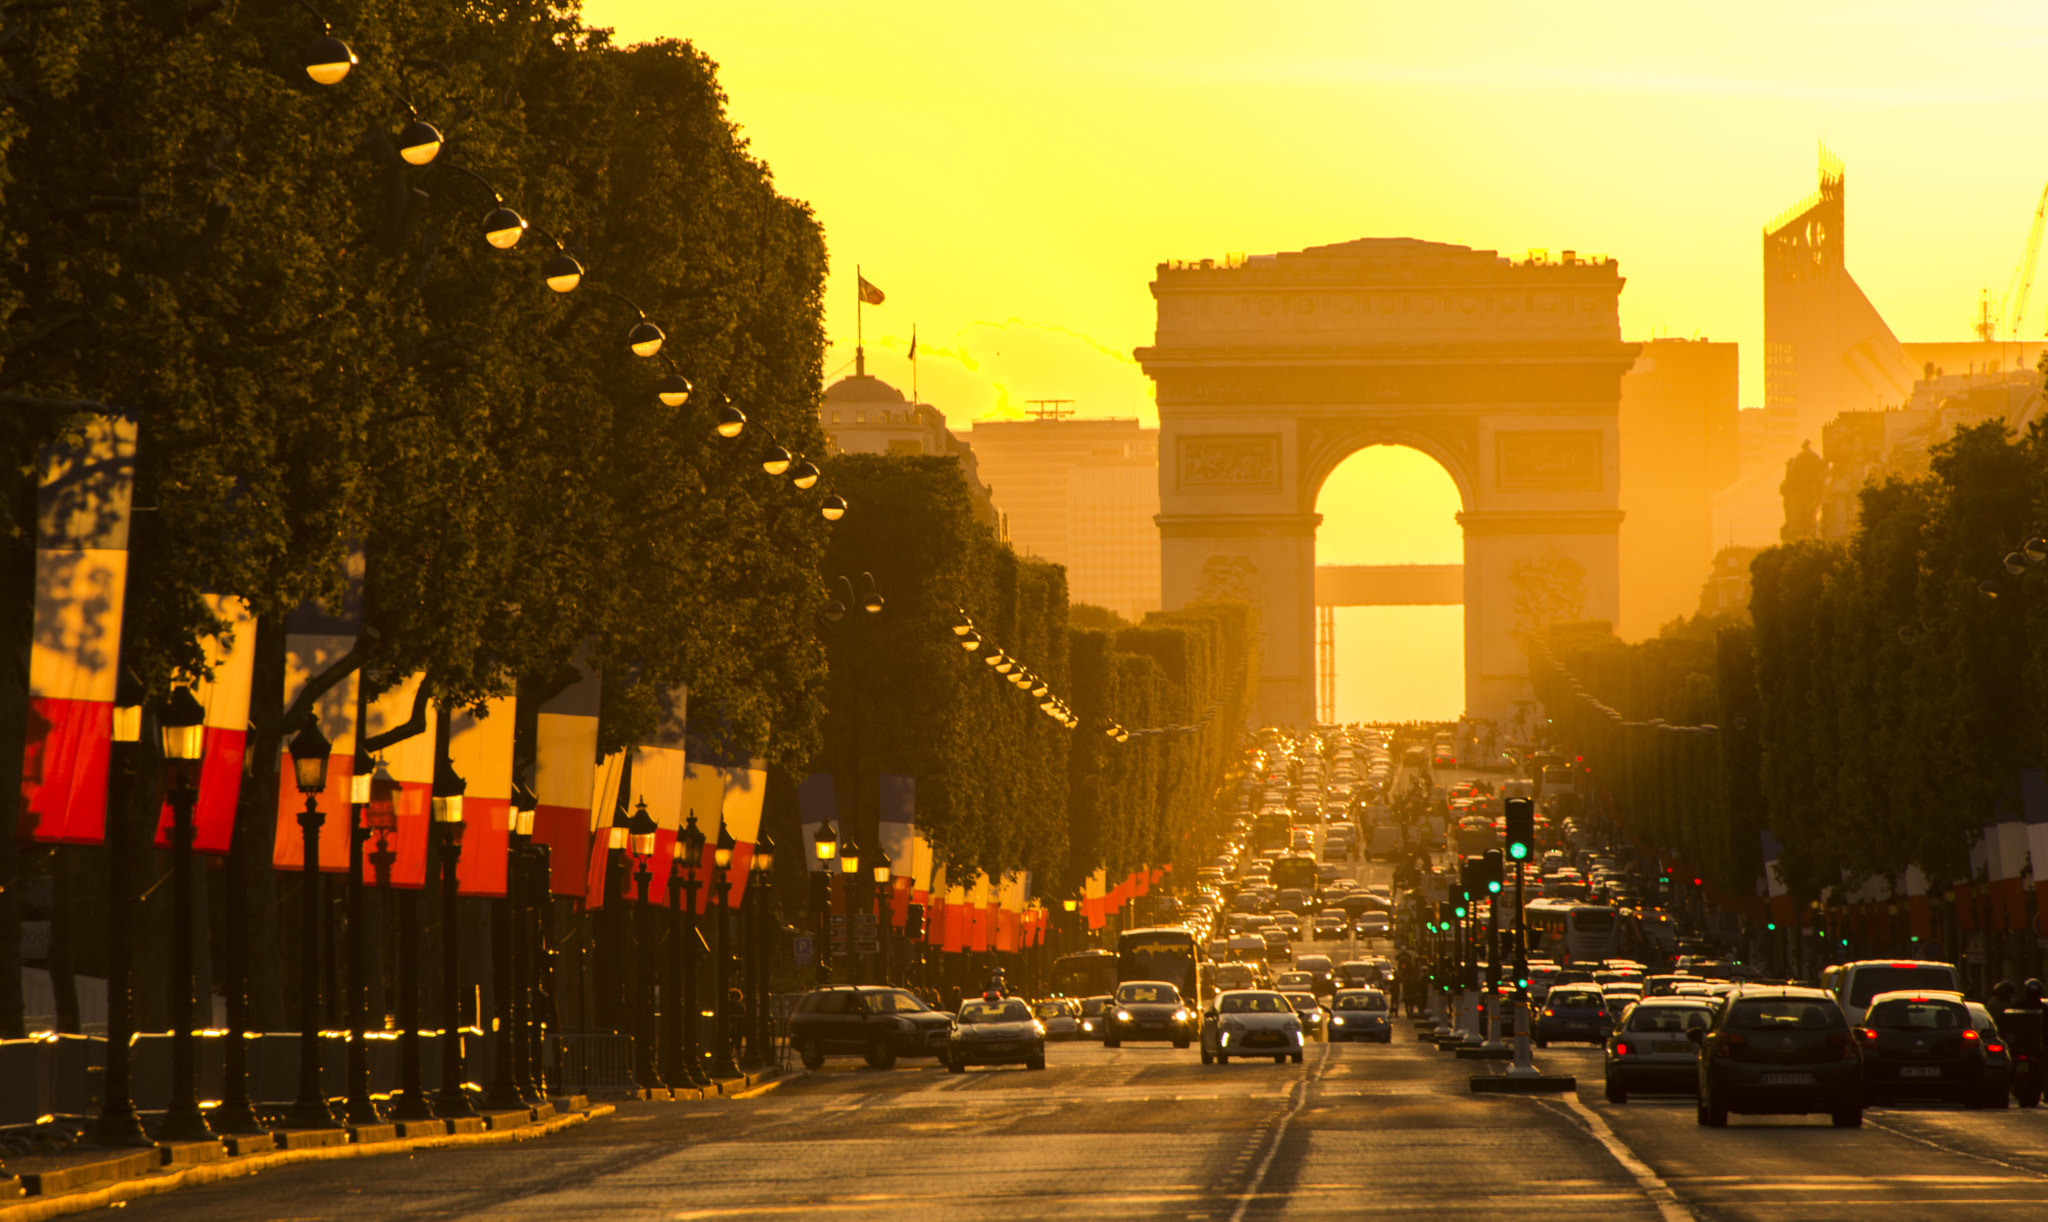 Photograph Sunset on the Champs Elysees Paris by Keith McInnes on 500px